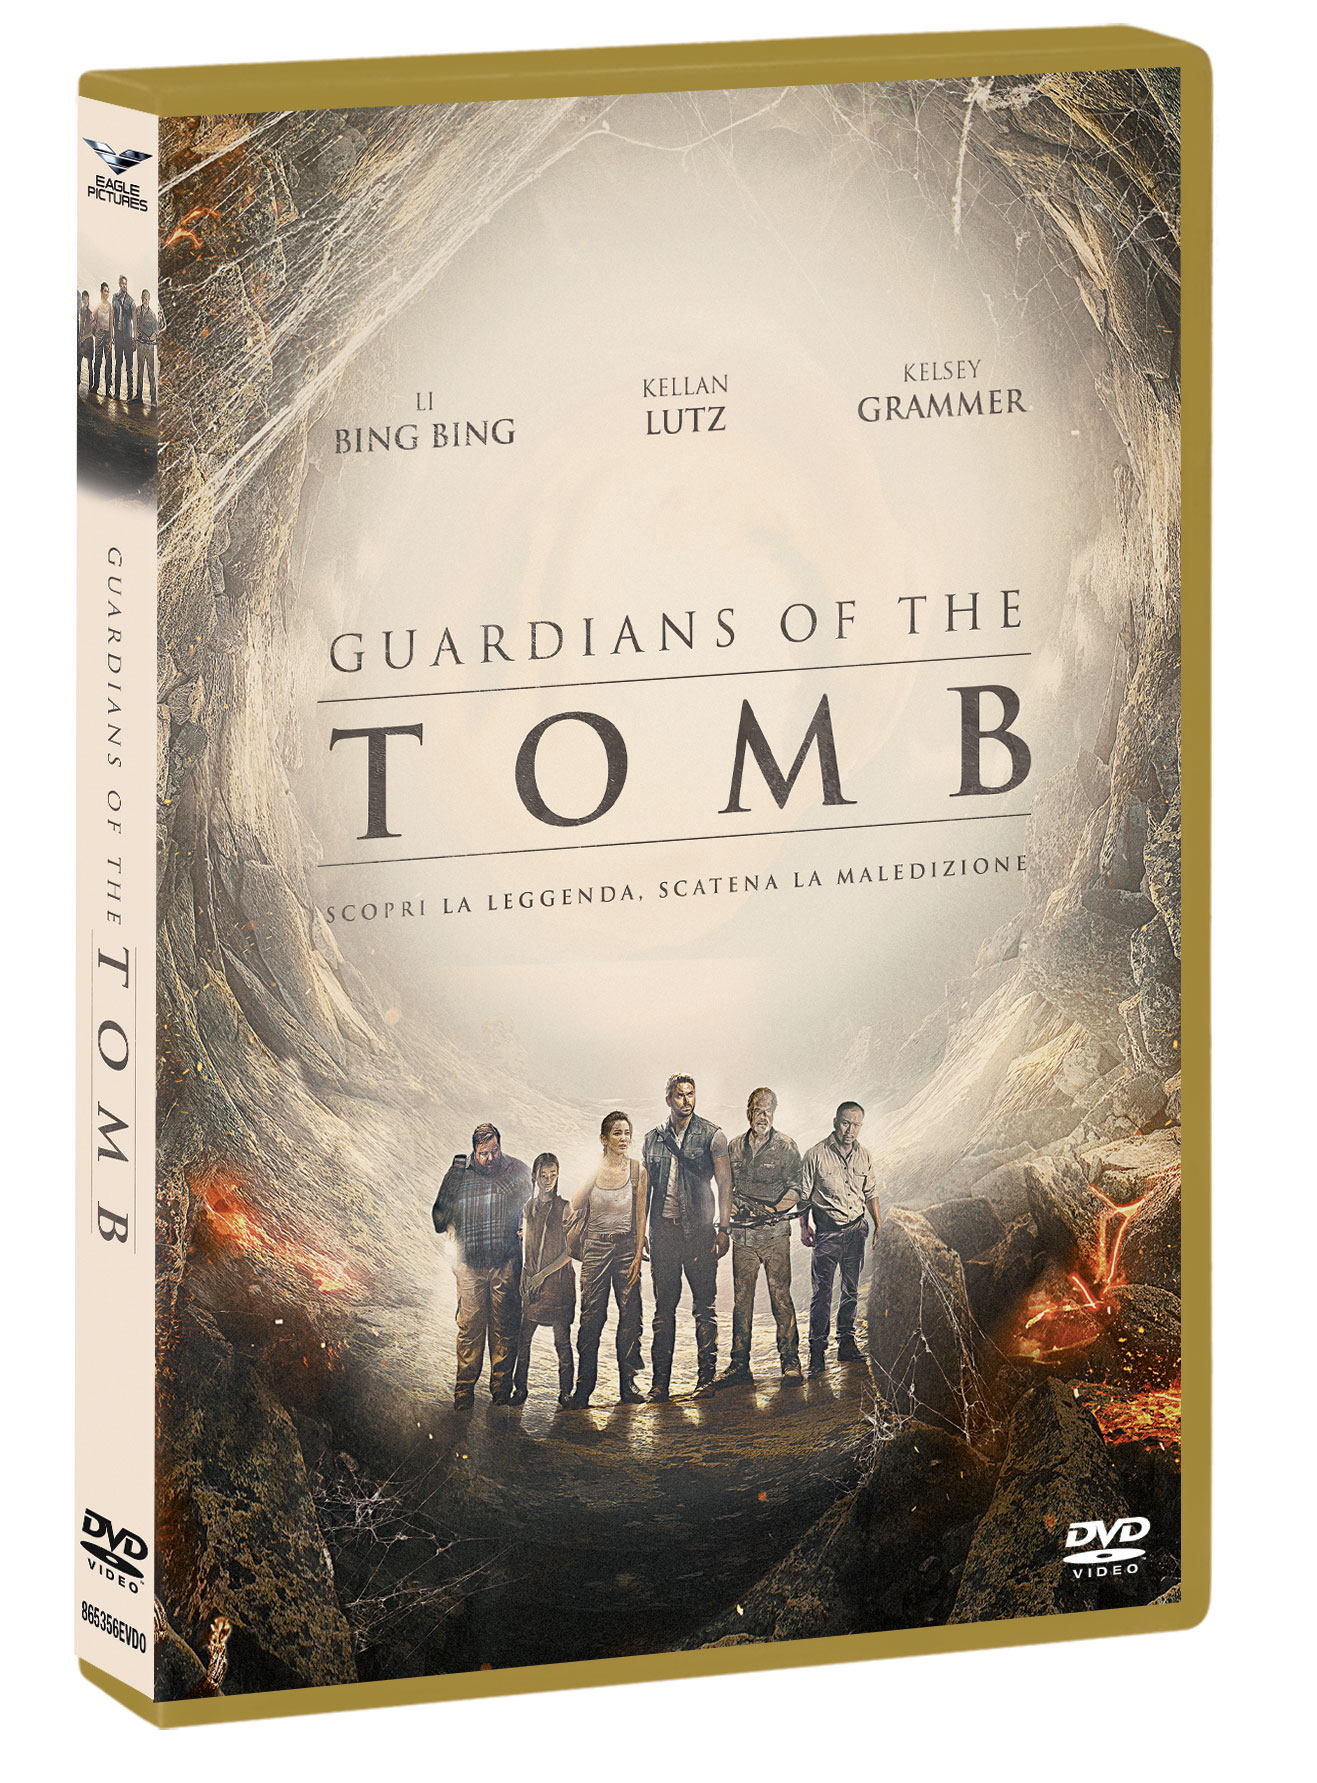 GUARDIANS OF THE TOMB - BLU RAY (DVD)